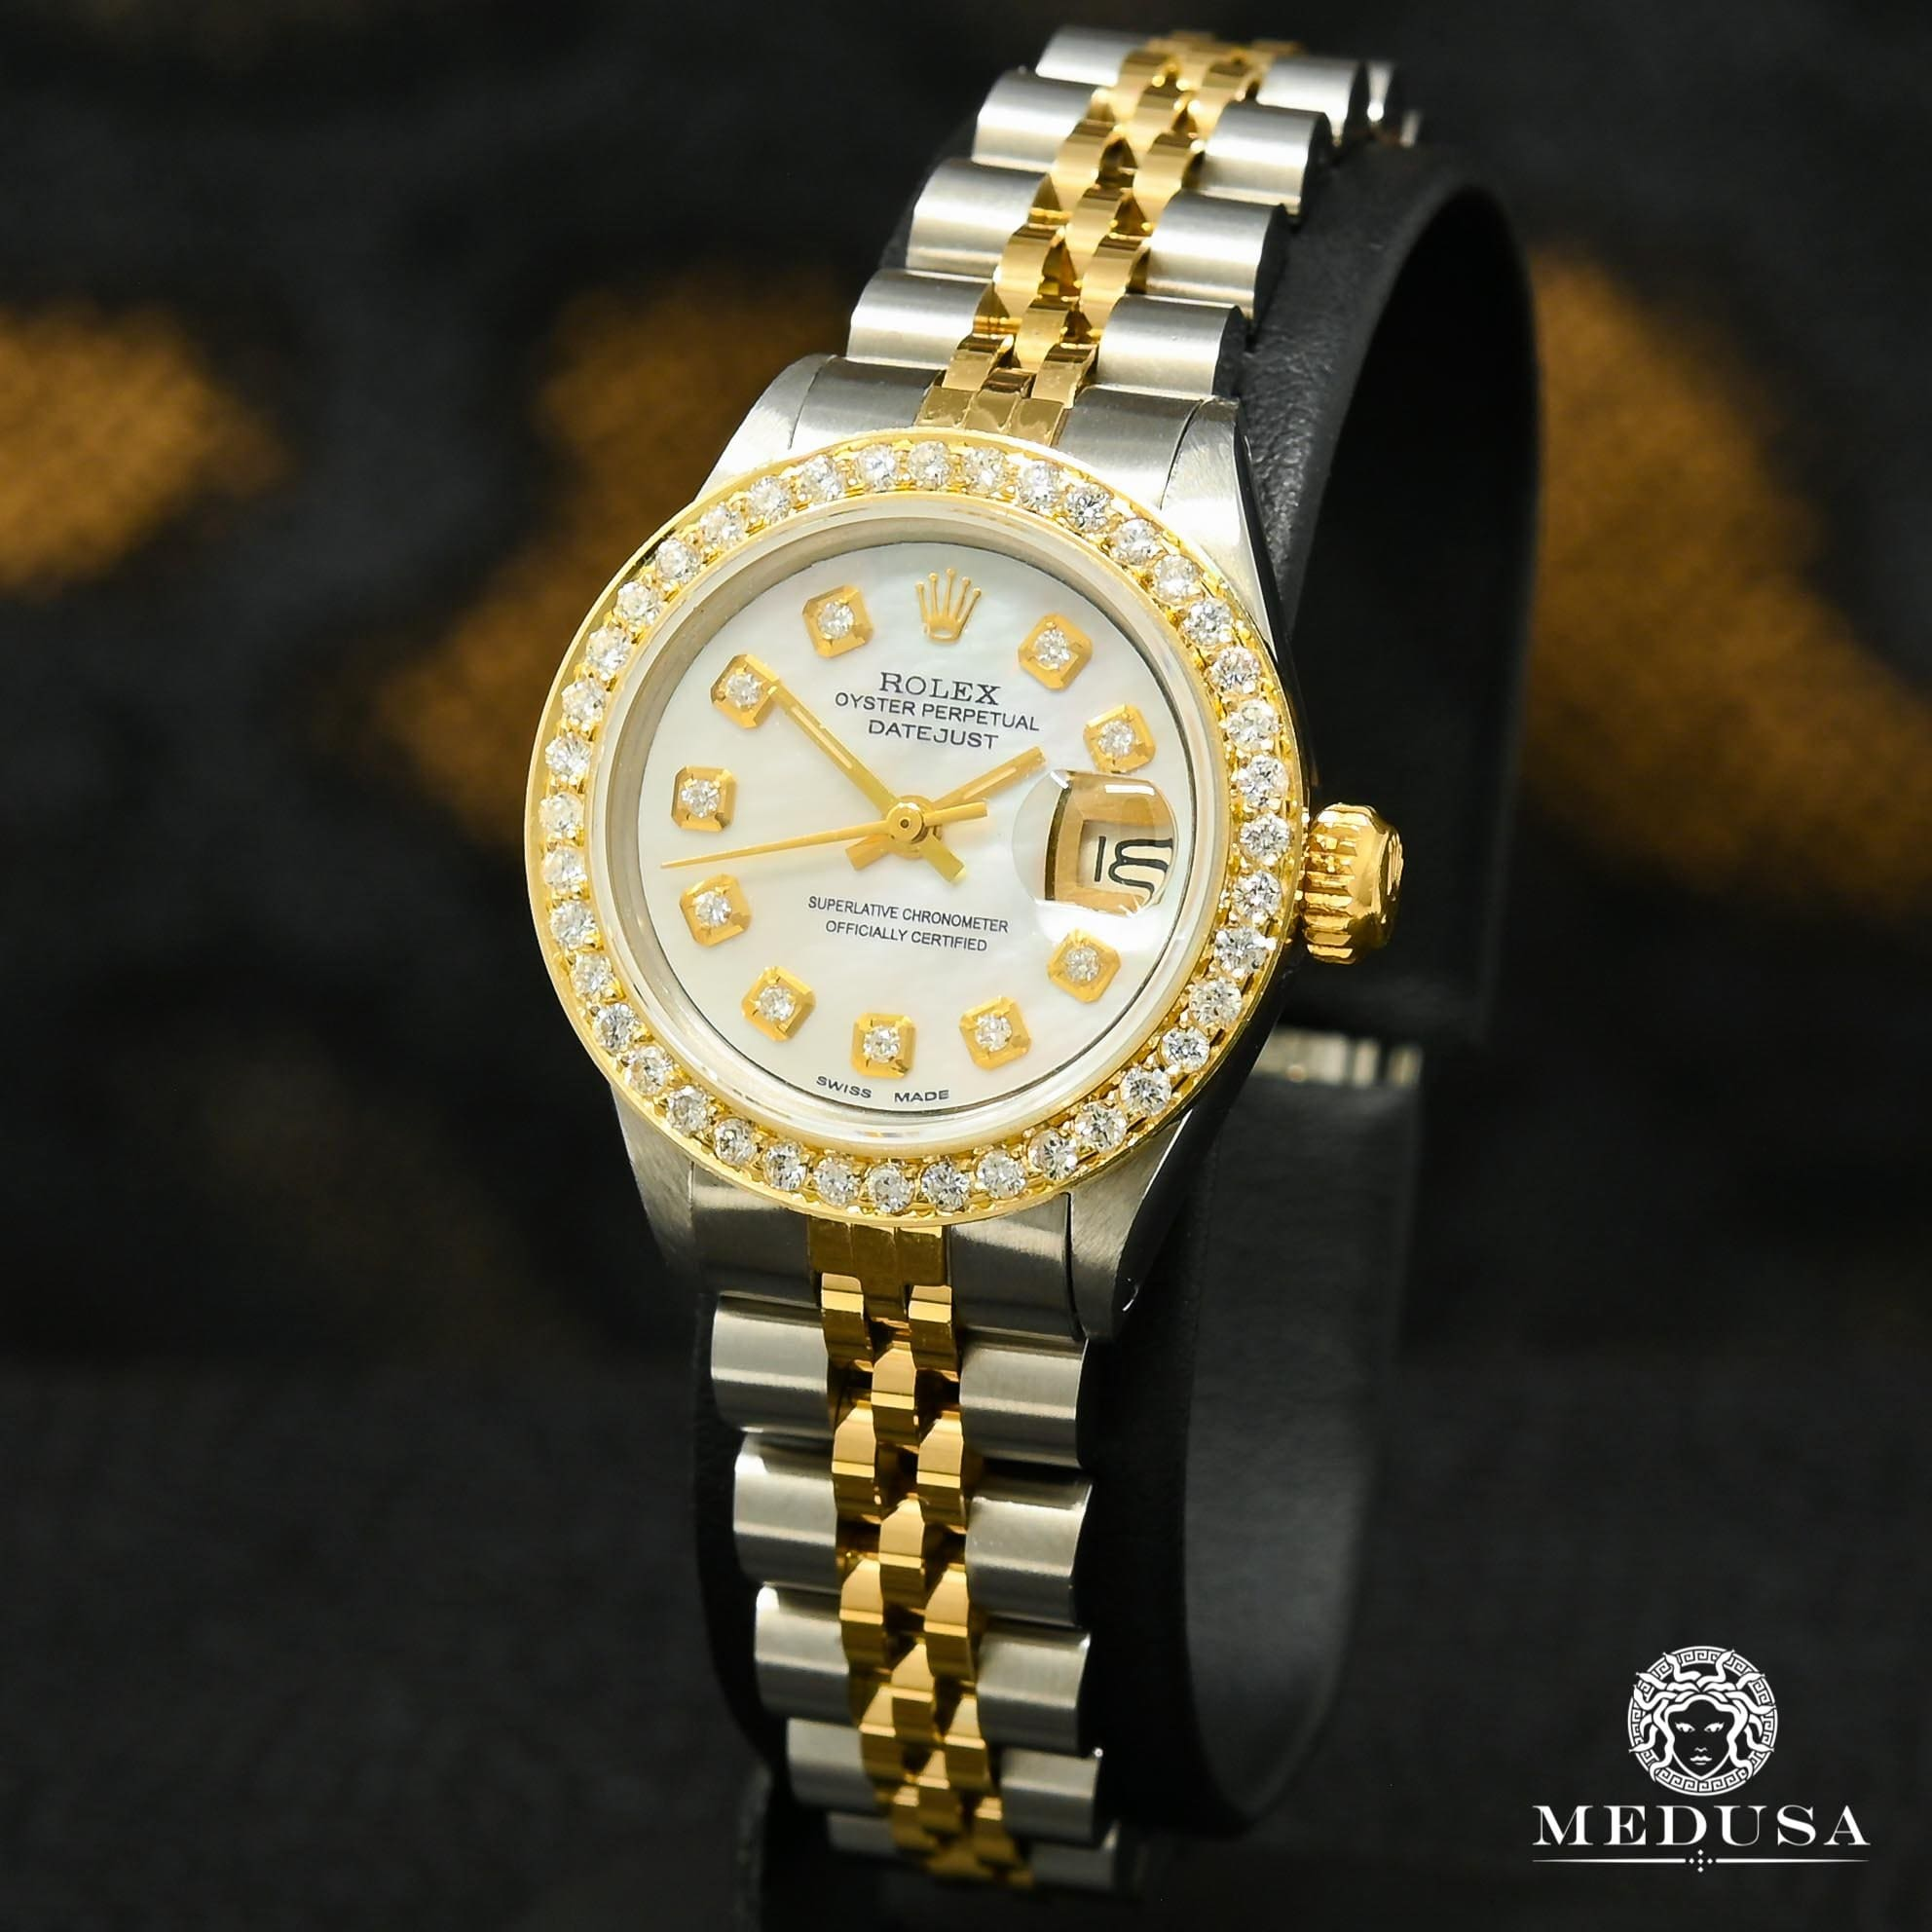 "Rolex Watch | Rolex Datejust 26mm Woman Watch - White """" Mother of Pearl """" Or 2 Tones"